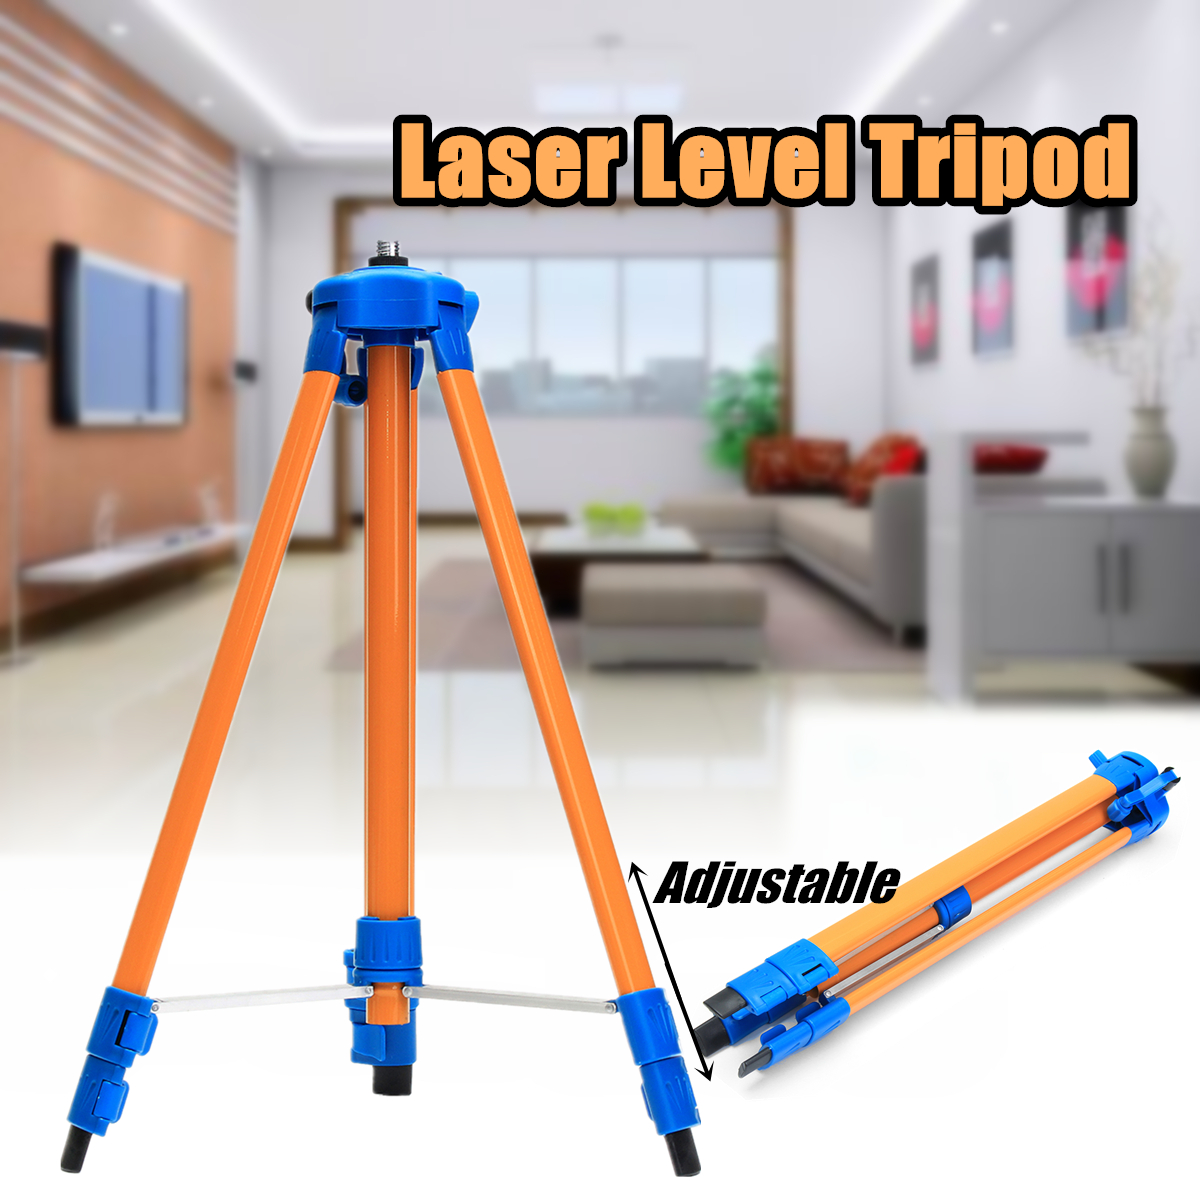 Universal 1.5M Laser Level Tripod Stand for Laser Level Aluminium Alloy